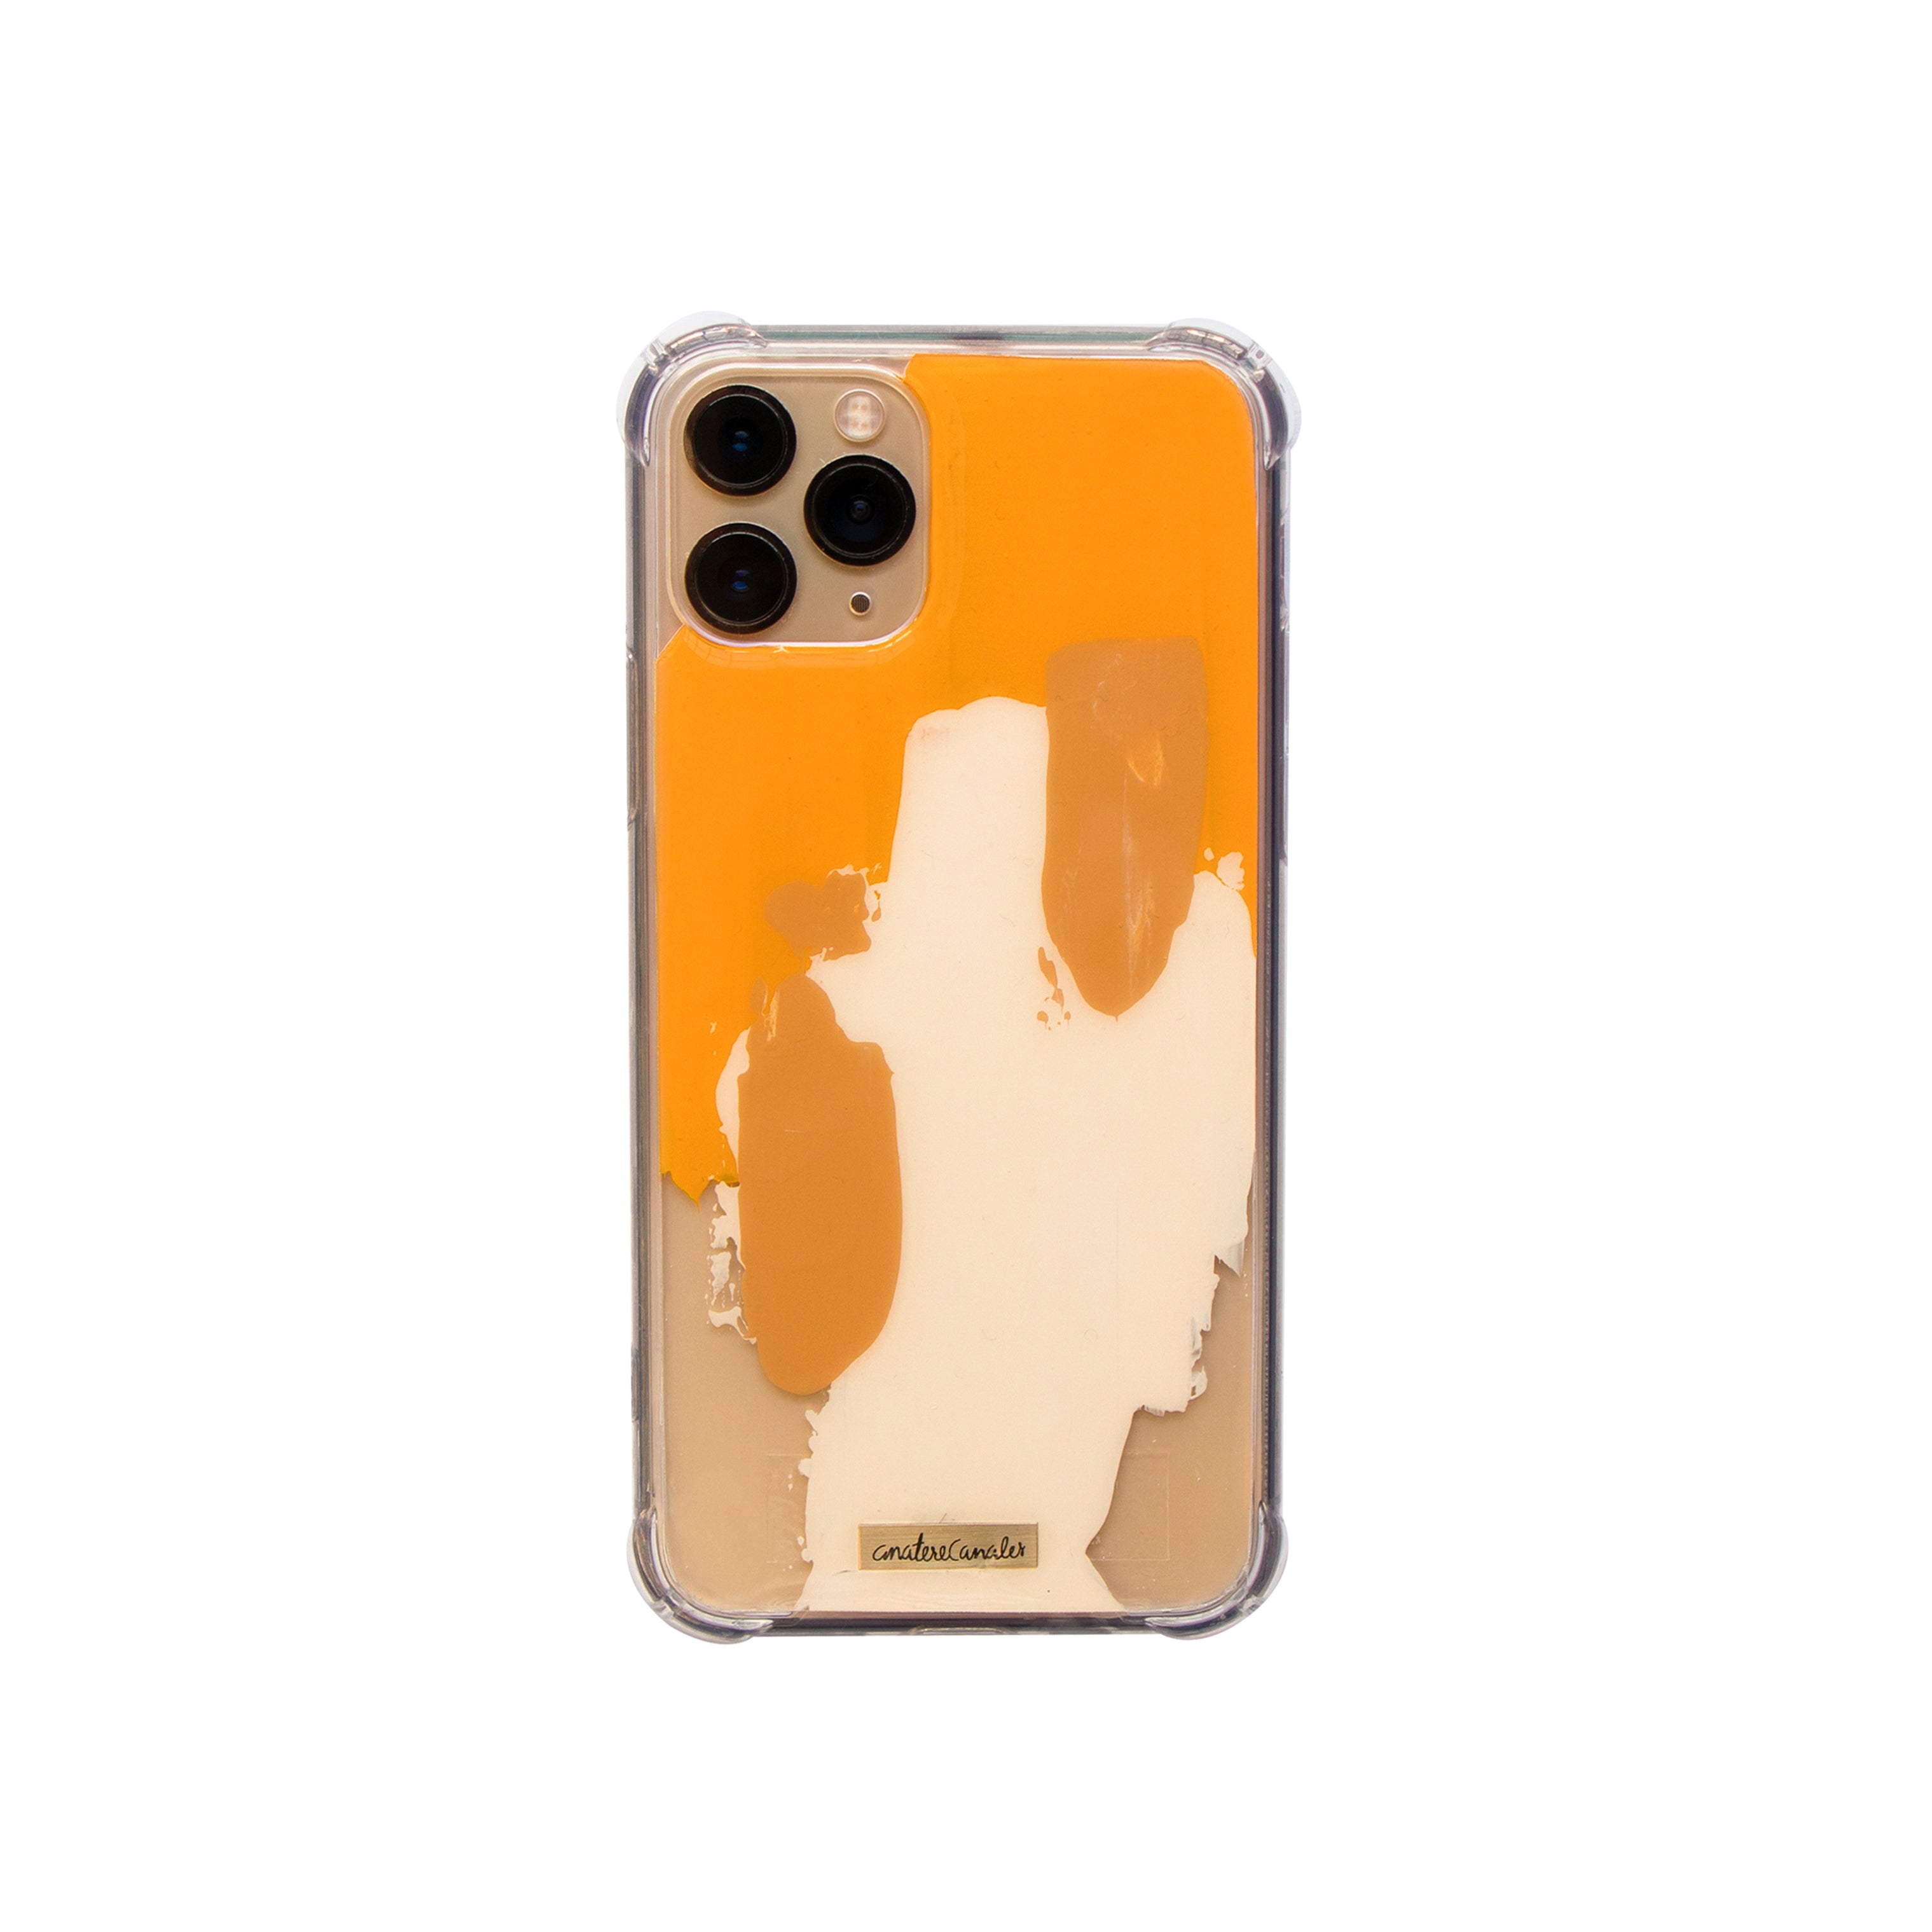 Sunset Case/Funda para iPhone/Samsung - Ana Tere Canales